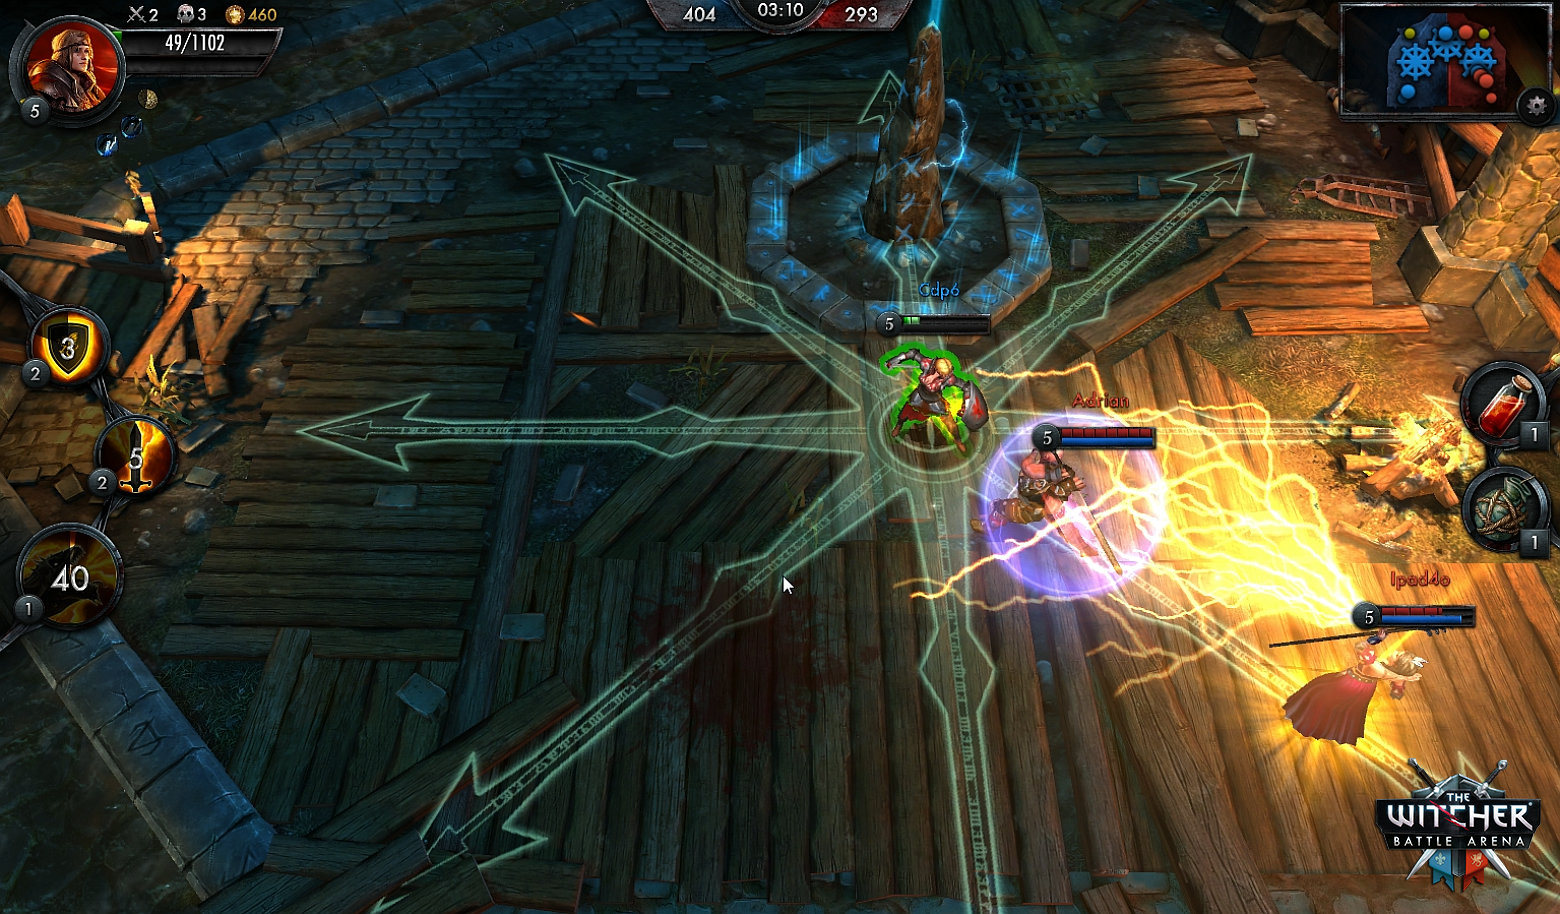 The Witcher Battle Arena Is An EyeCatching DotAStyle Multiplayer